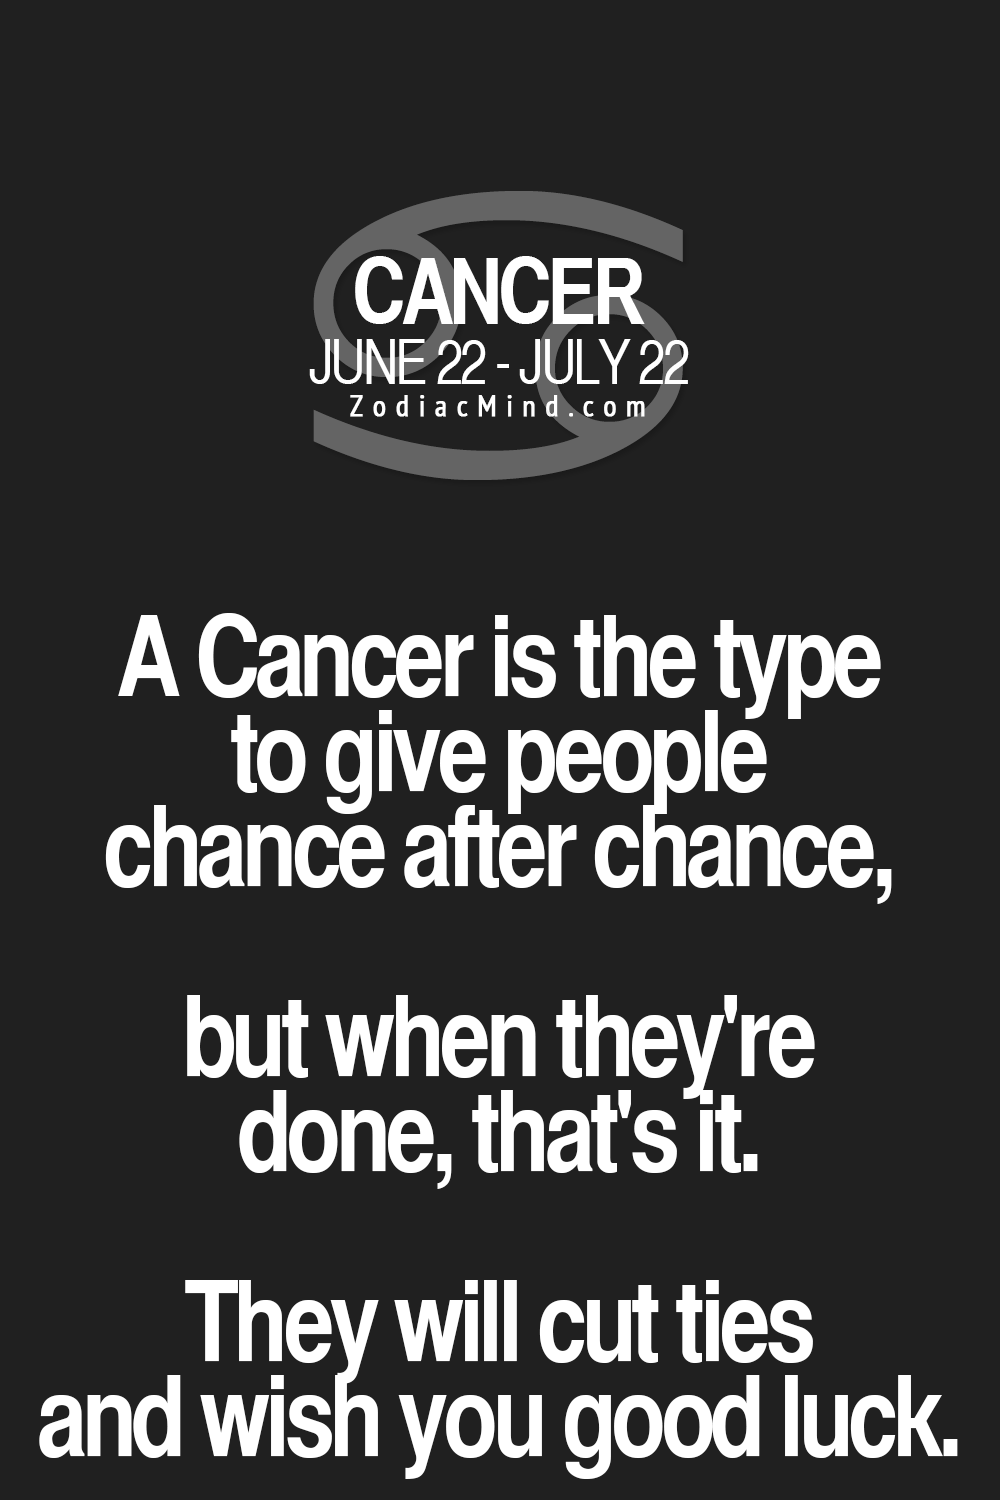 Cancer Zodiac Quotes Zodiac Mind  Your #1 Source For Zodiac Facts  Photo  Inspiration .